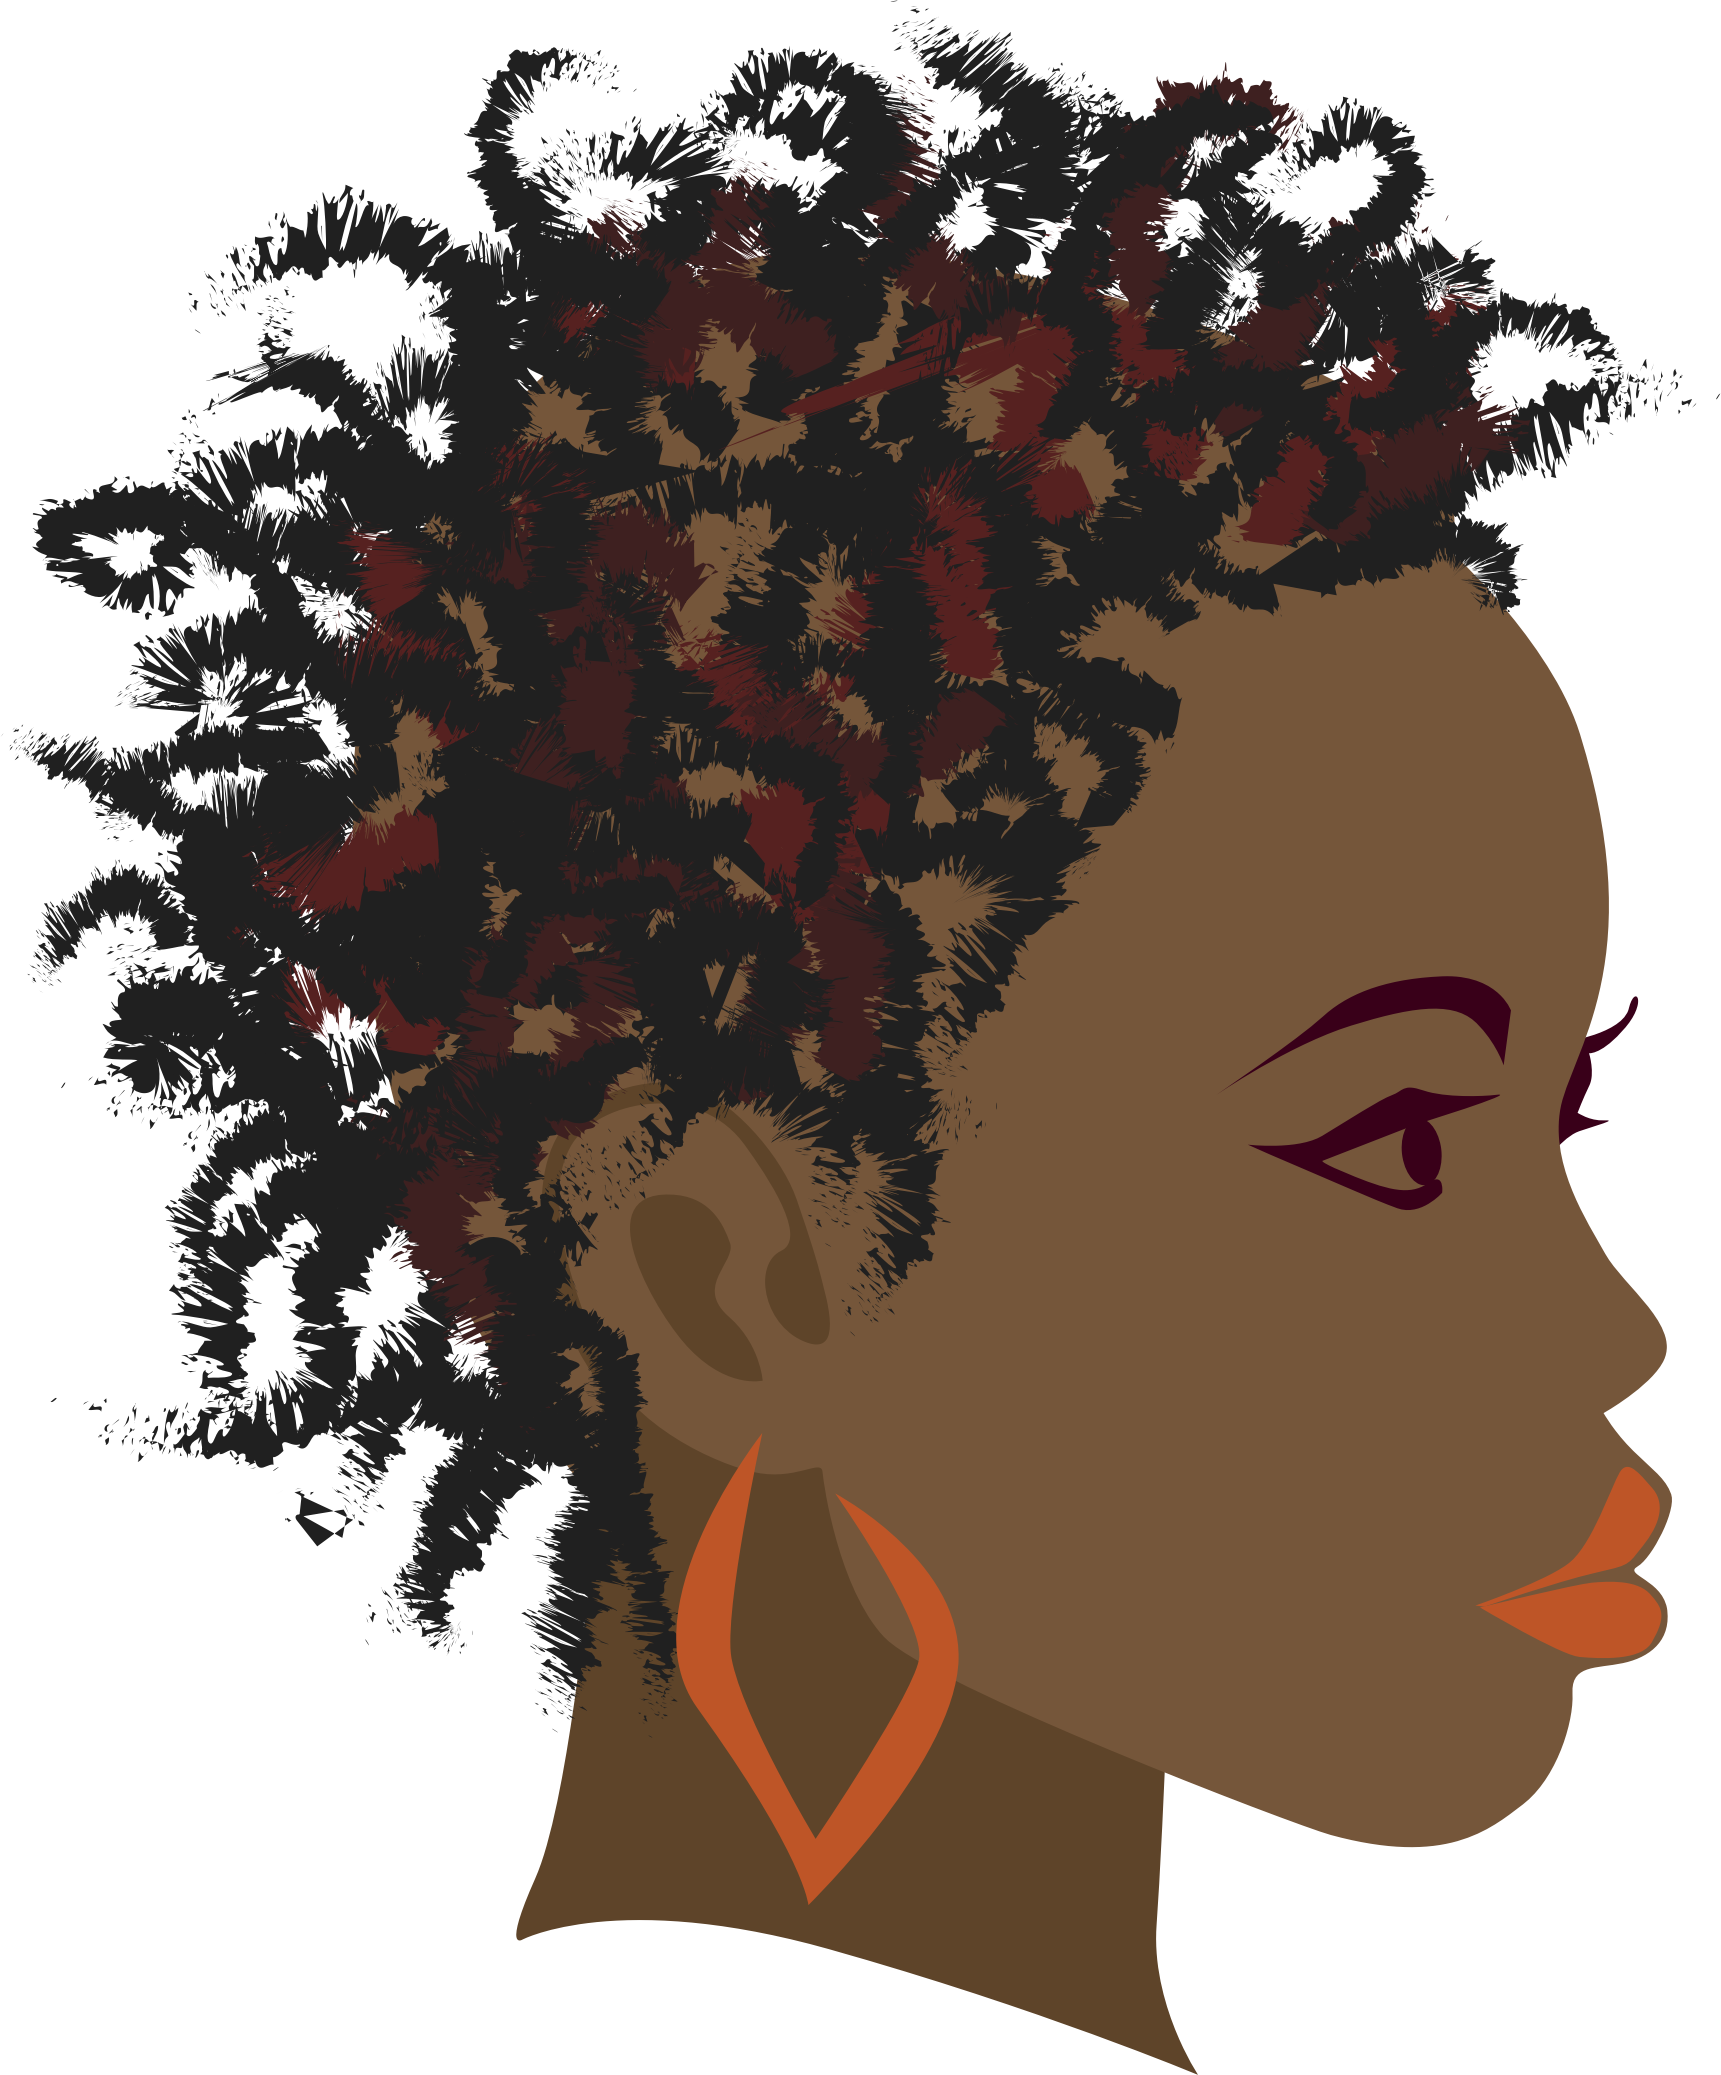 African Girl 2 by hebron